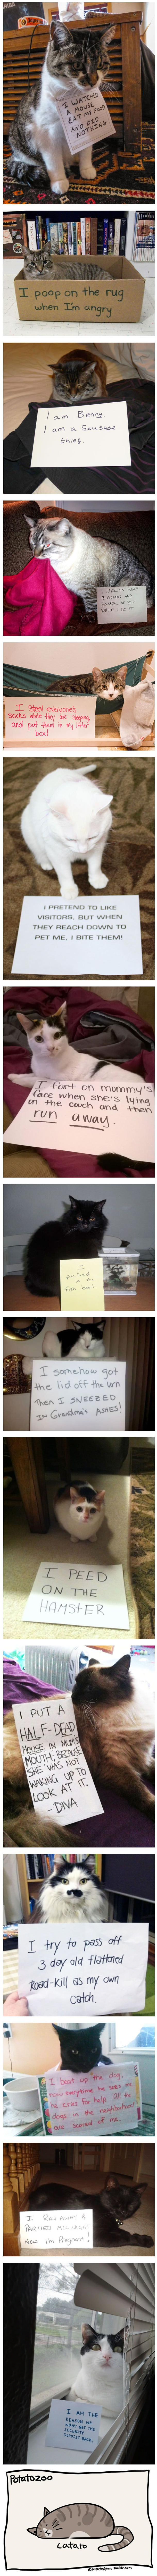 Guilty Cats That Are NOT Sorry – GAG